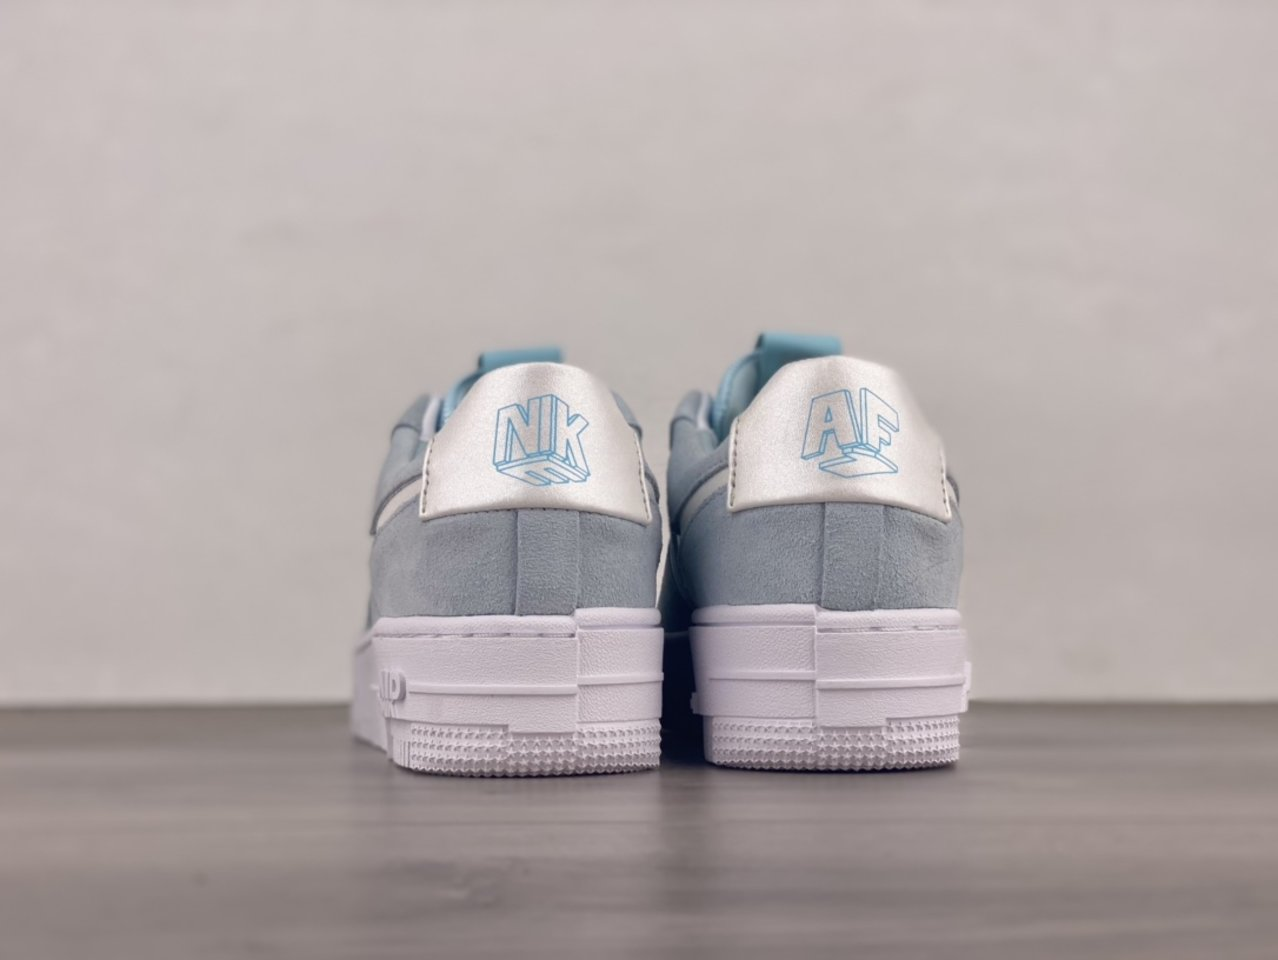 Nike Air Force 1 Pixel Glacier Blue Casual Shoes DH3855-400 Behind